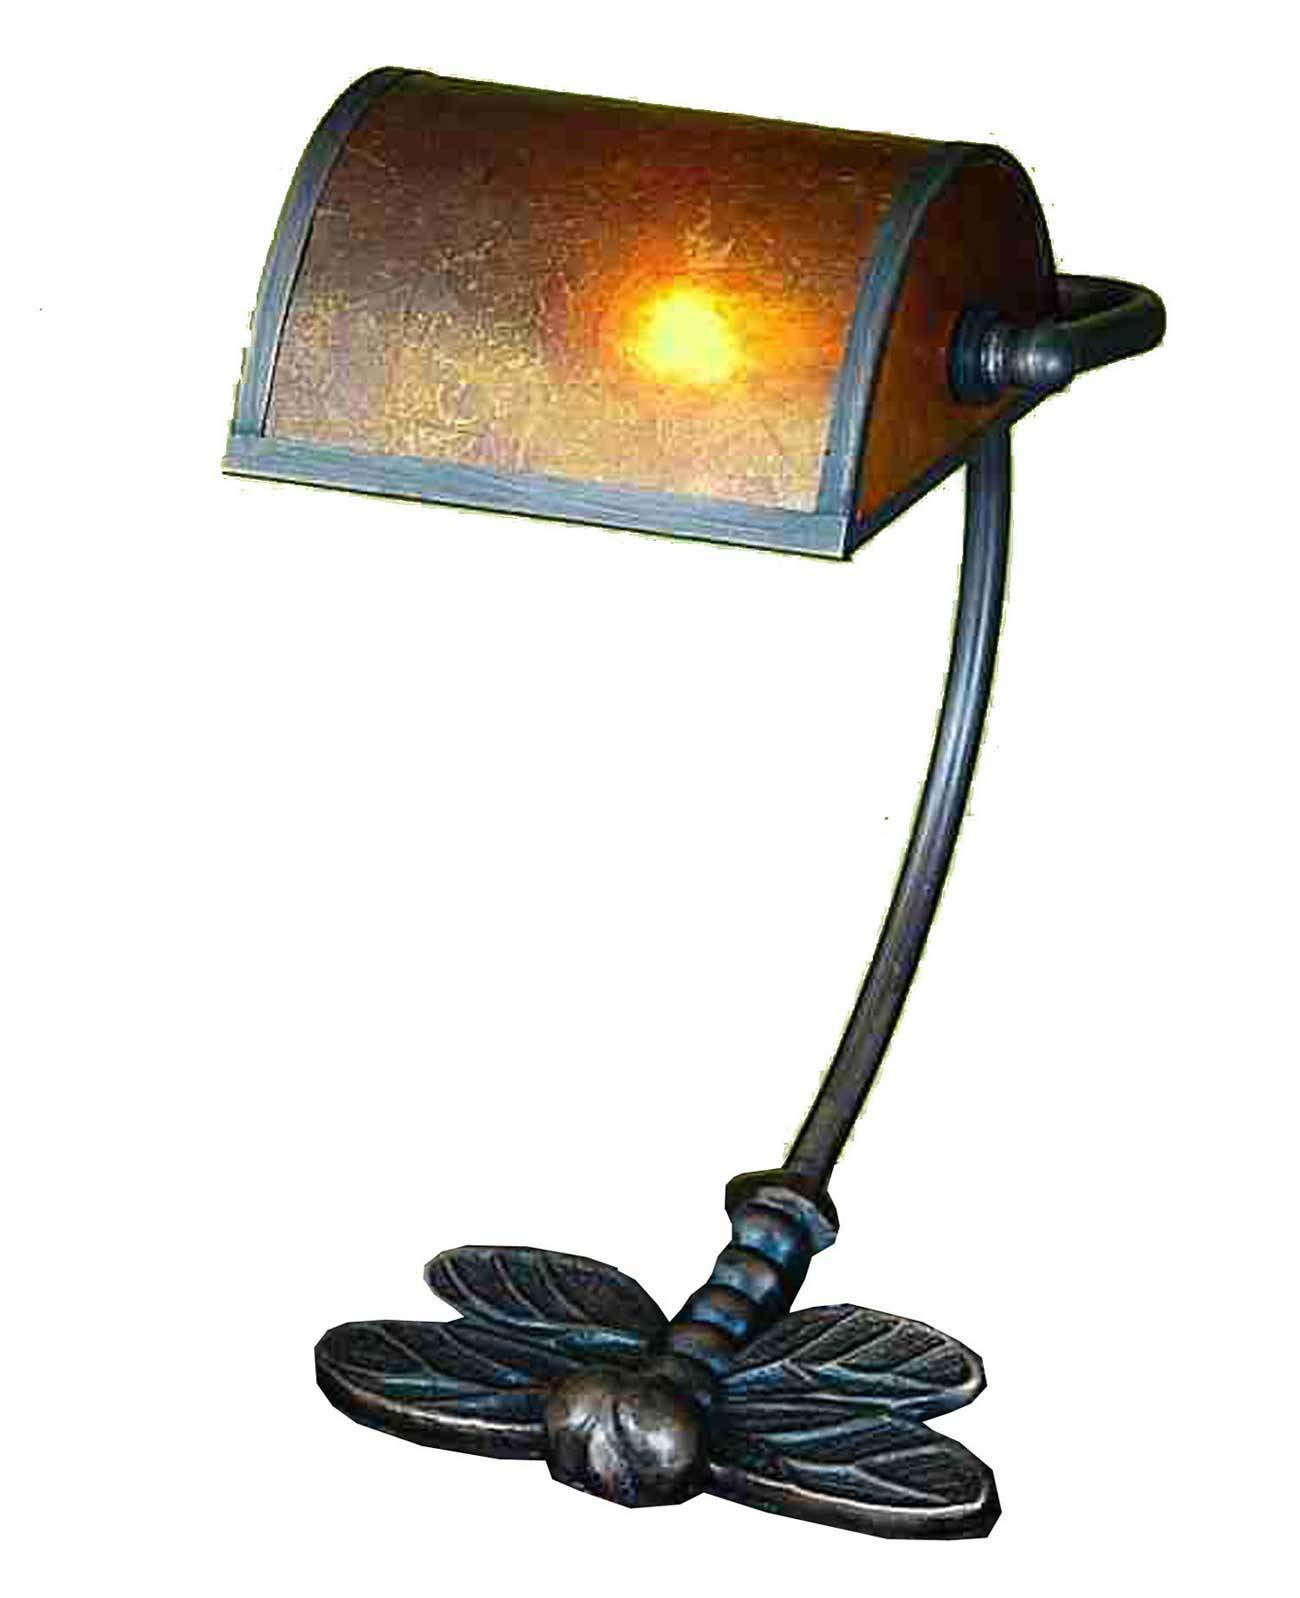 ideas battery operated lamps floor table lamp with shade powered indoor accent ballard designs office antique glass coffee side plans dining room centerpiece unique better homes